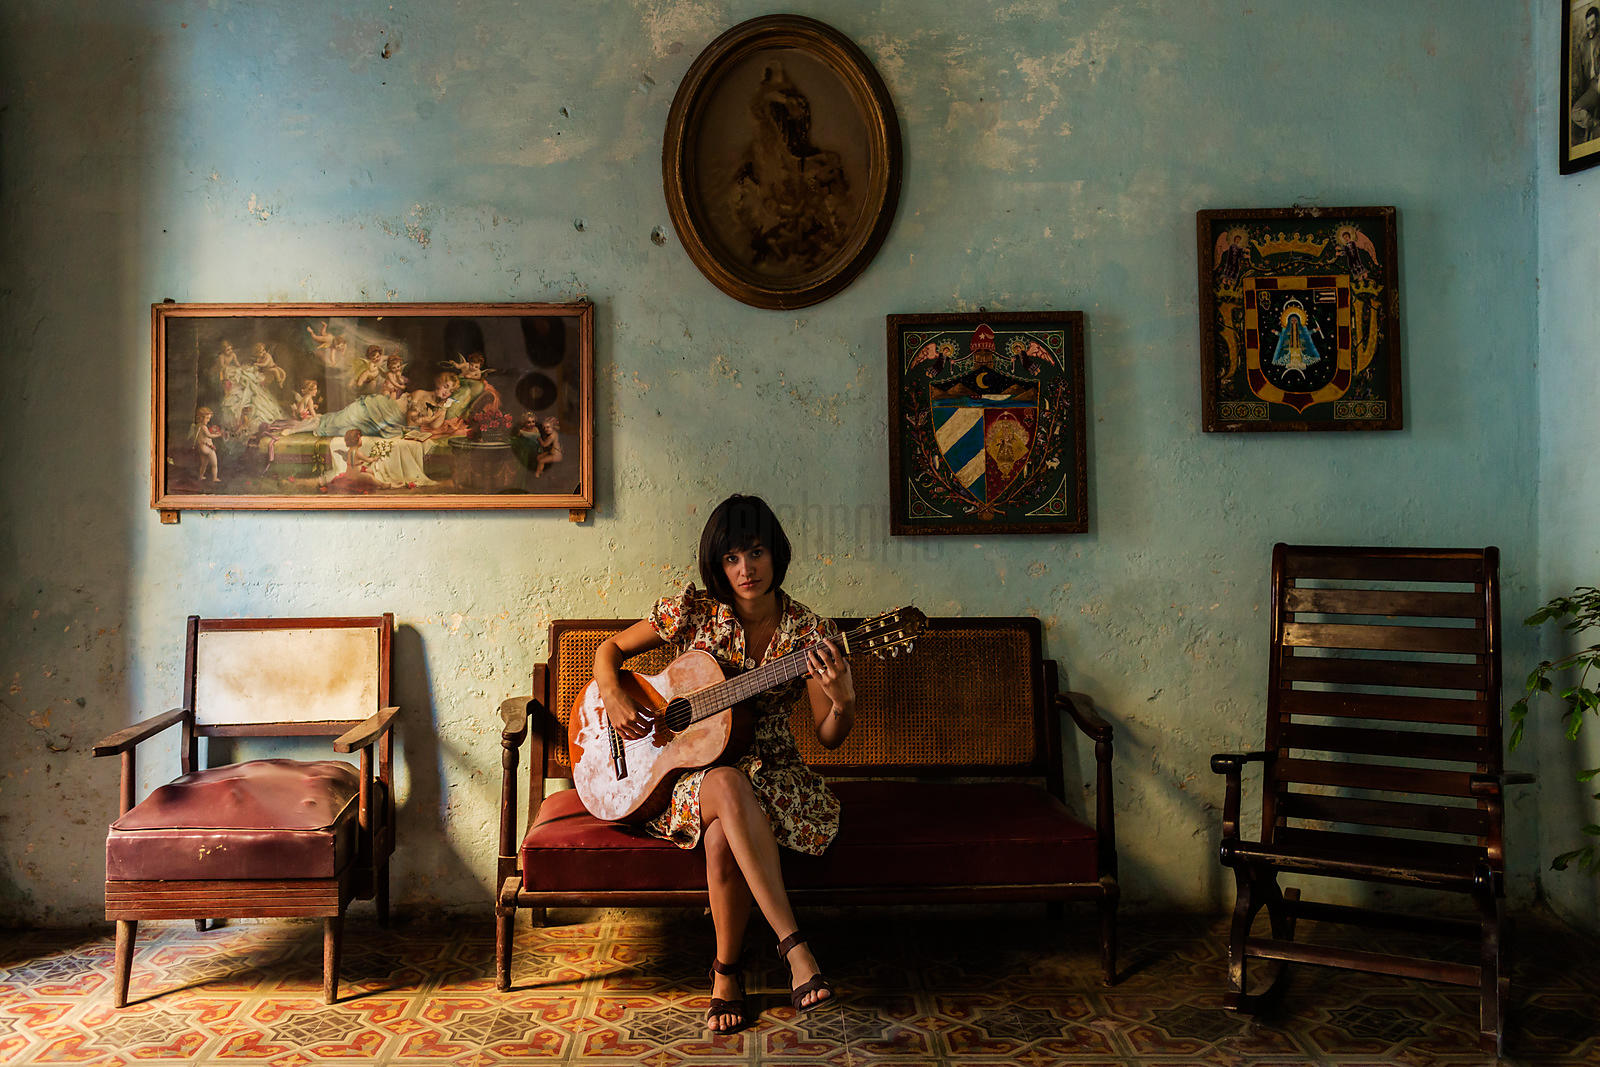 Musician Playing Guitar in a Cuban Home in Old Havana